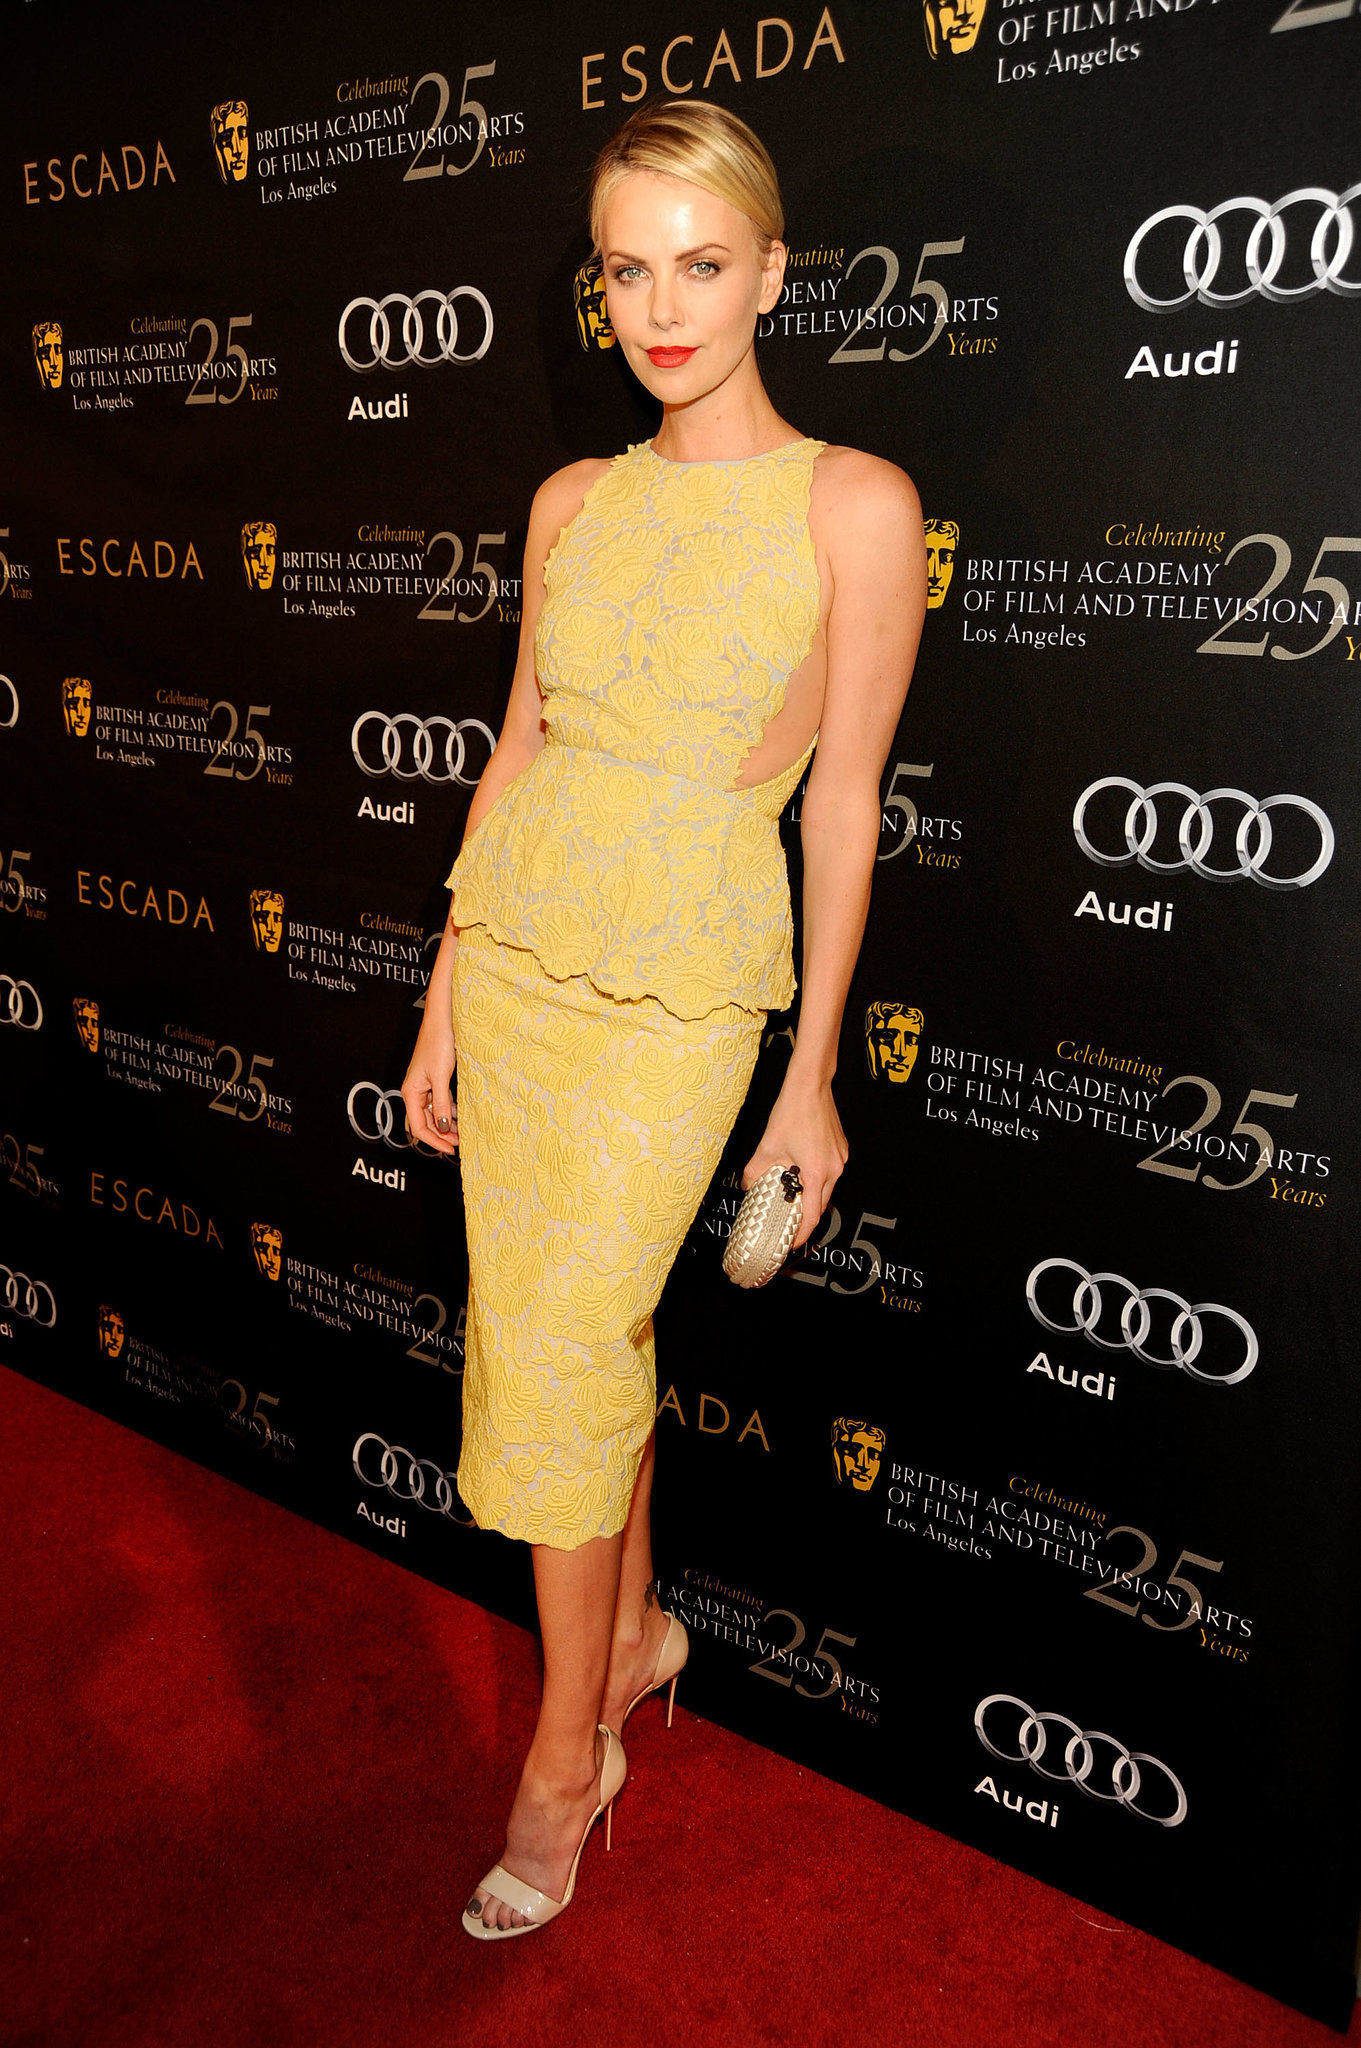 She glowed in this sunny flower-embossed Stella McCartney number — we especially love the added peplum silhouette.